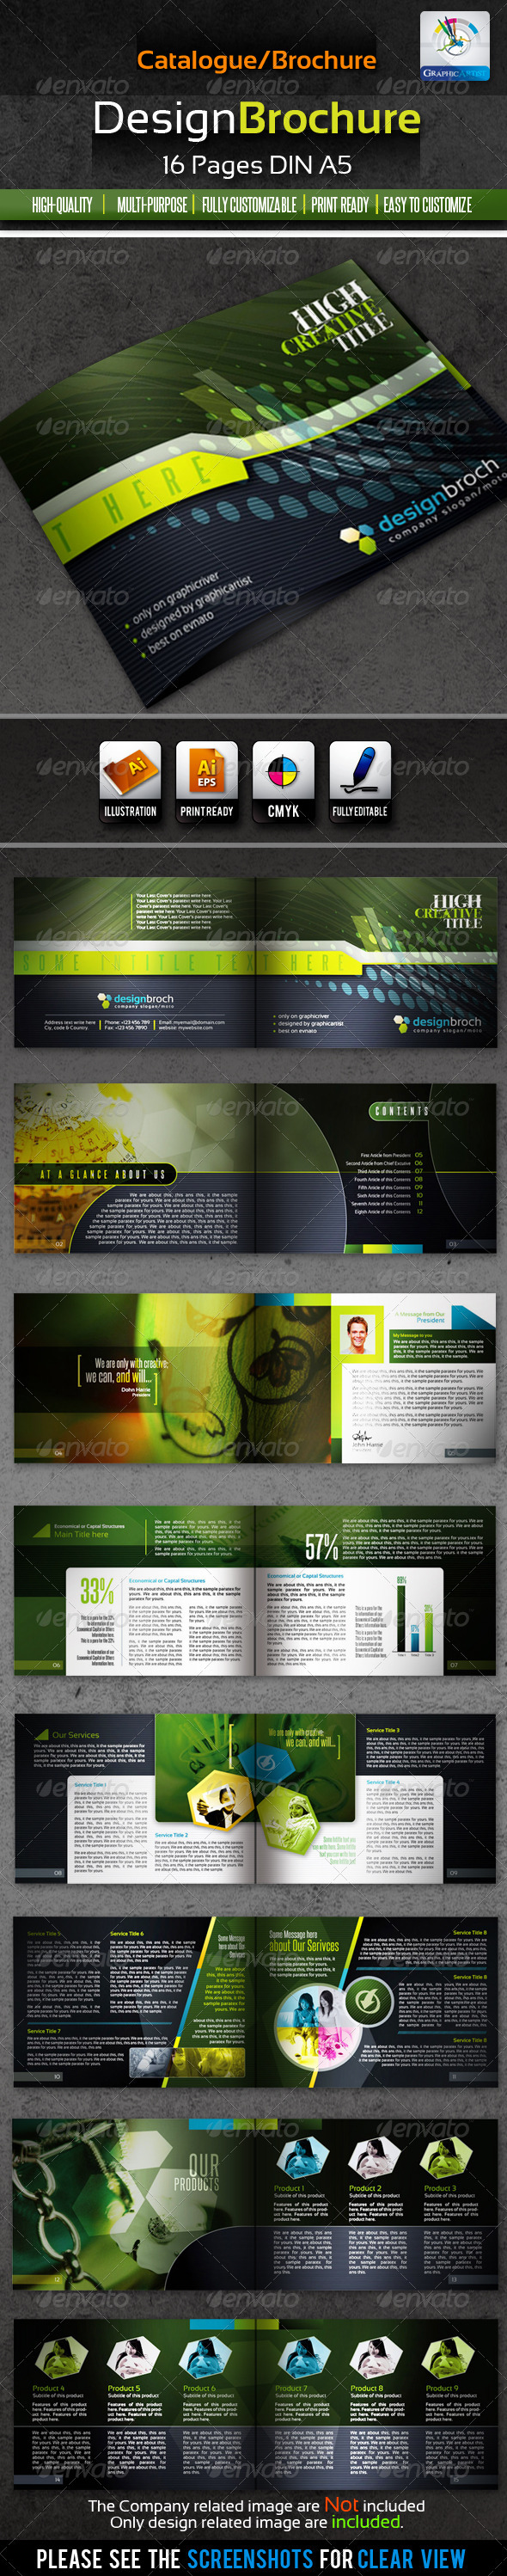 DesignBrochure 16pages Corporate Catalog/Brochure - Corporate Brochures